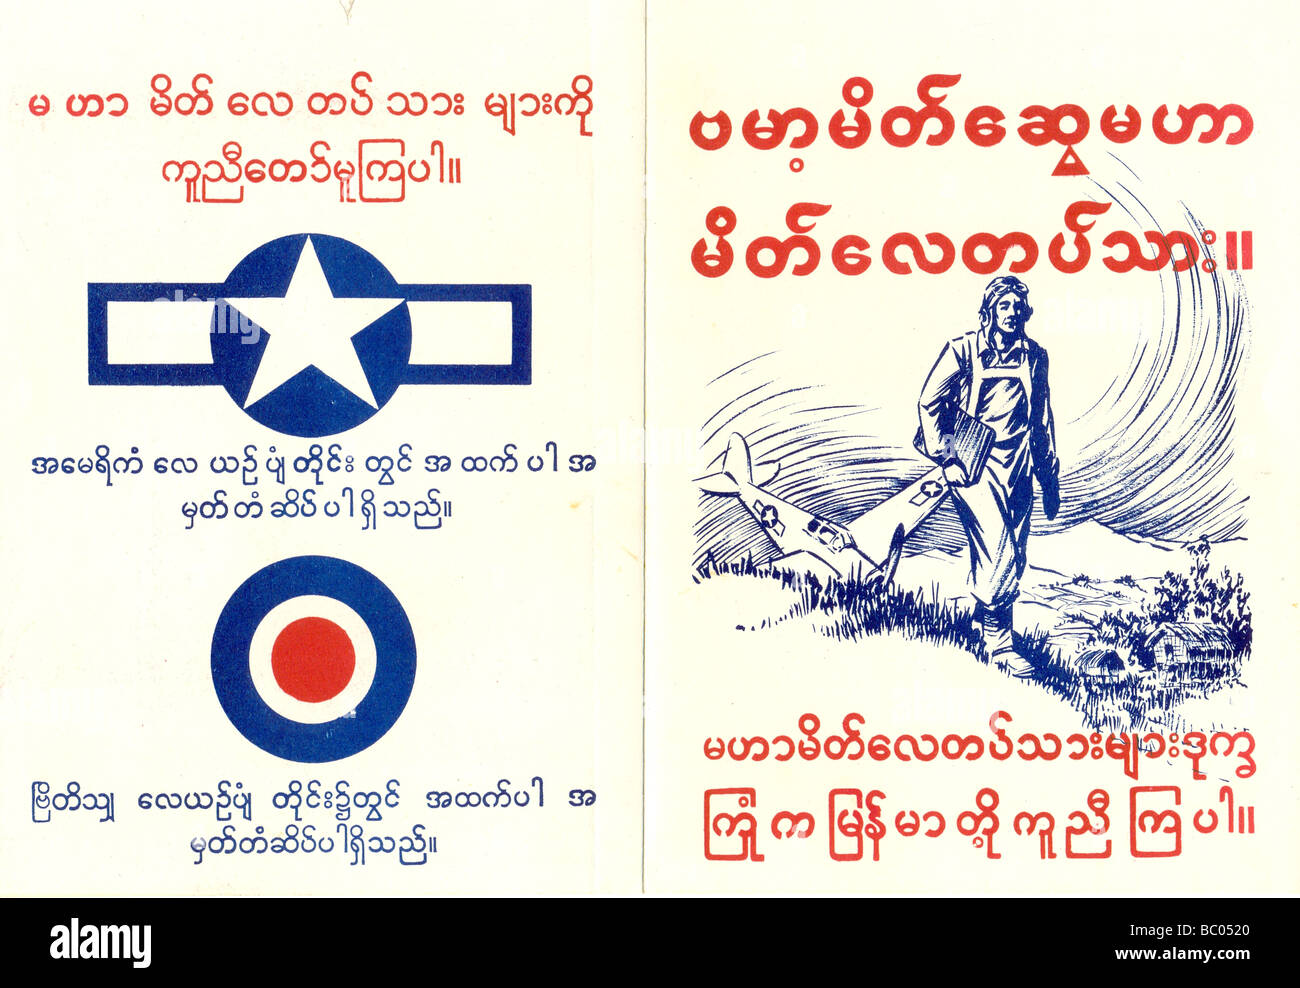 WW2 leaflet carried by airmen requesting help from local inhabitants in the event of a crash in Burma 1941 - Stock Image